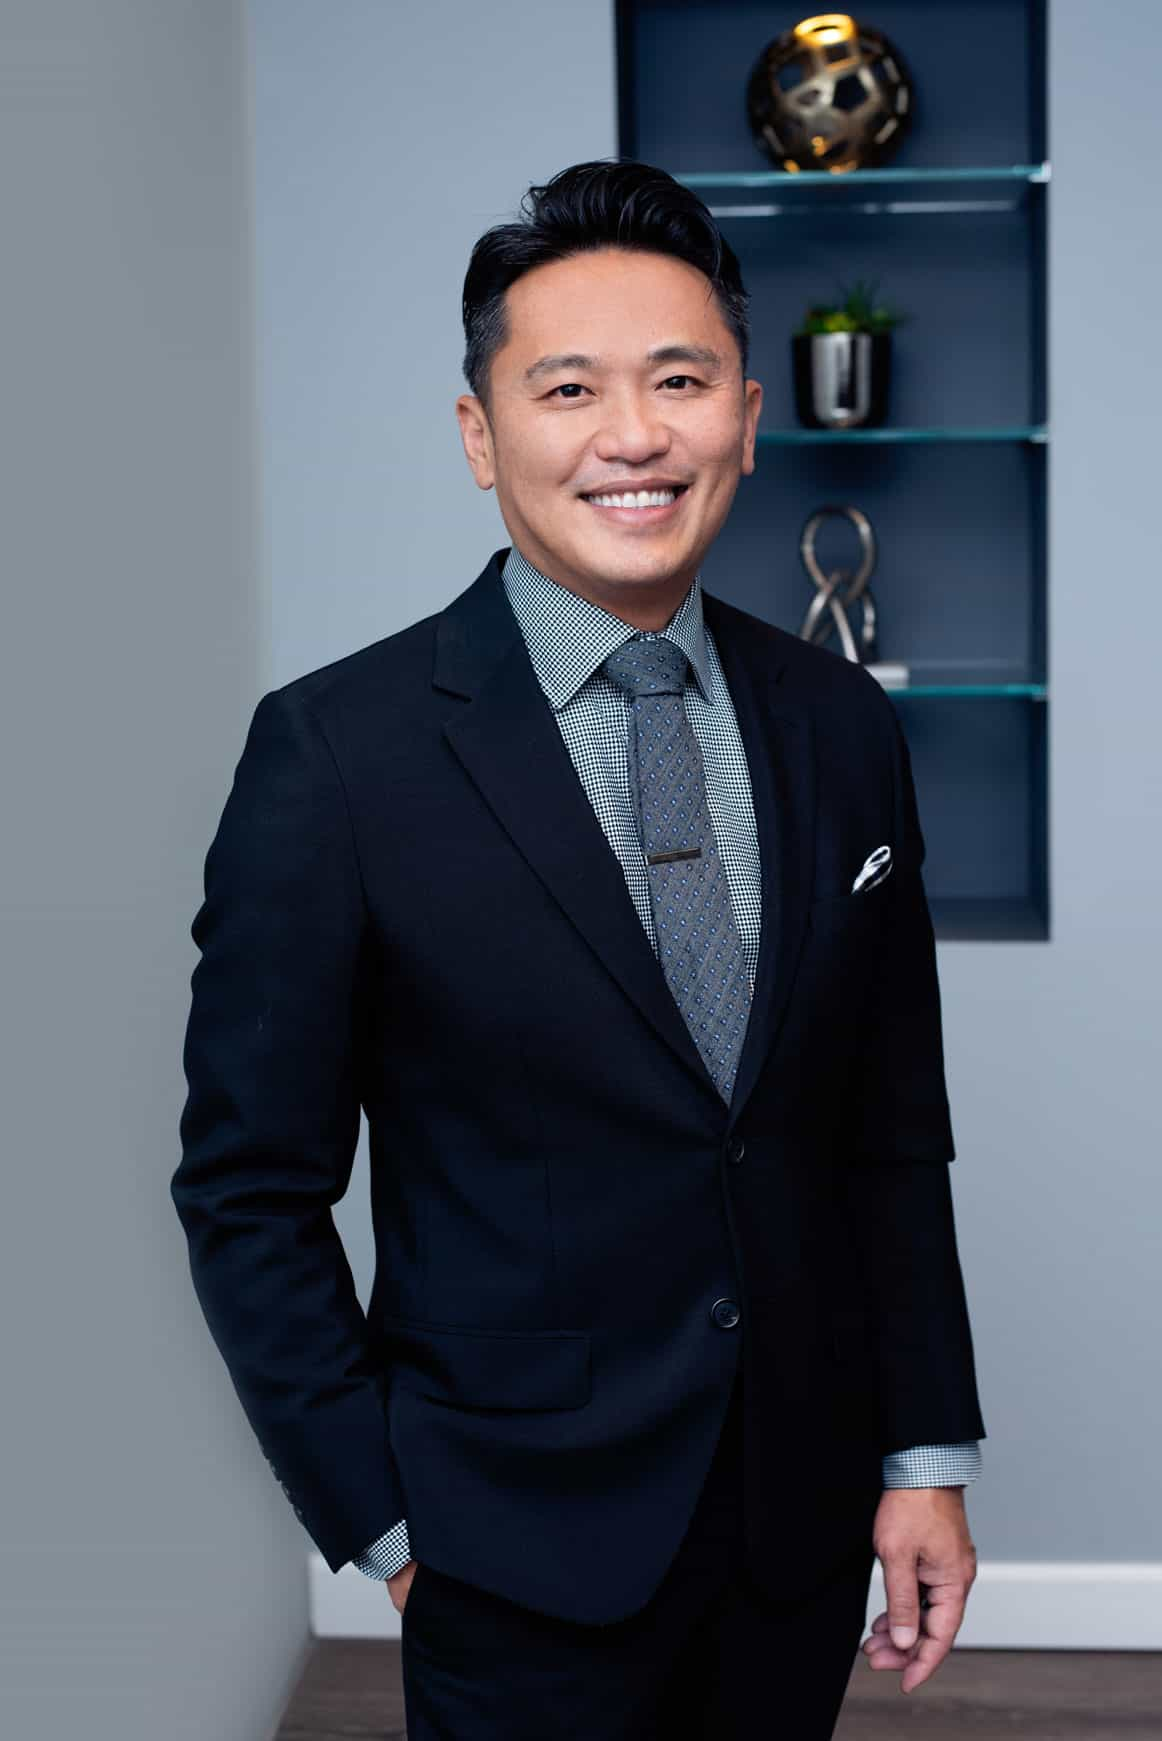 Dr. Truong Chicago Surgeon